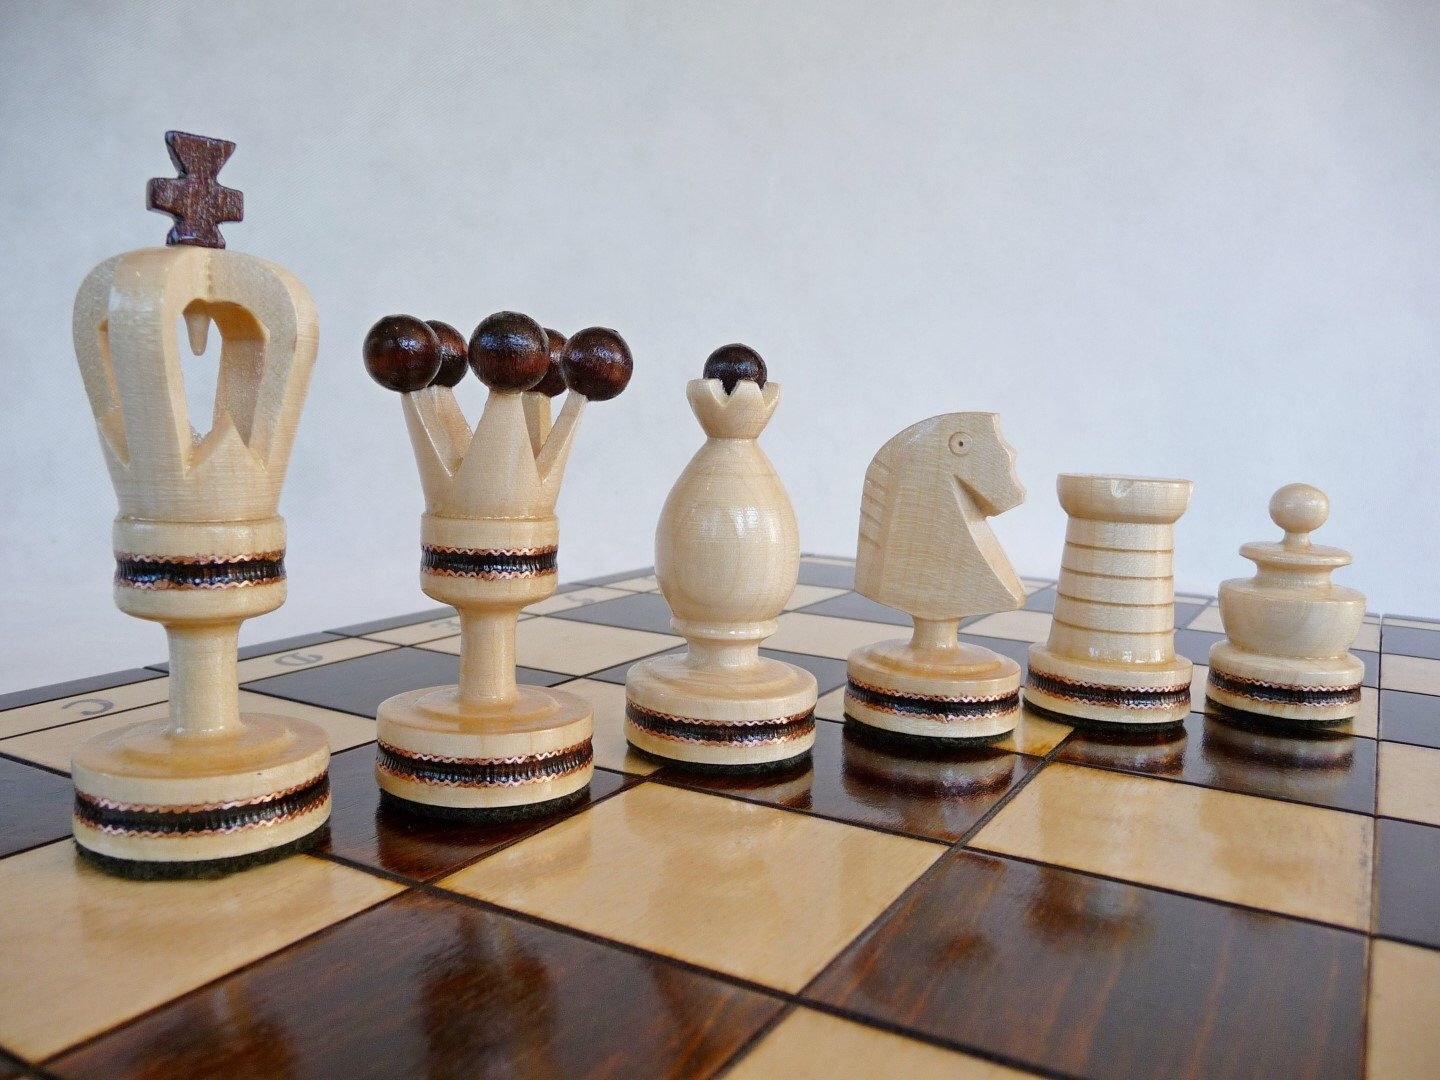 Pin by ਰਾਜਨ ਸਿੰਘ on My Design (With images) Wooden chess